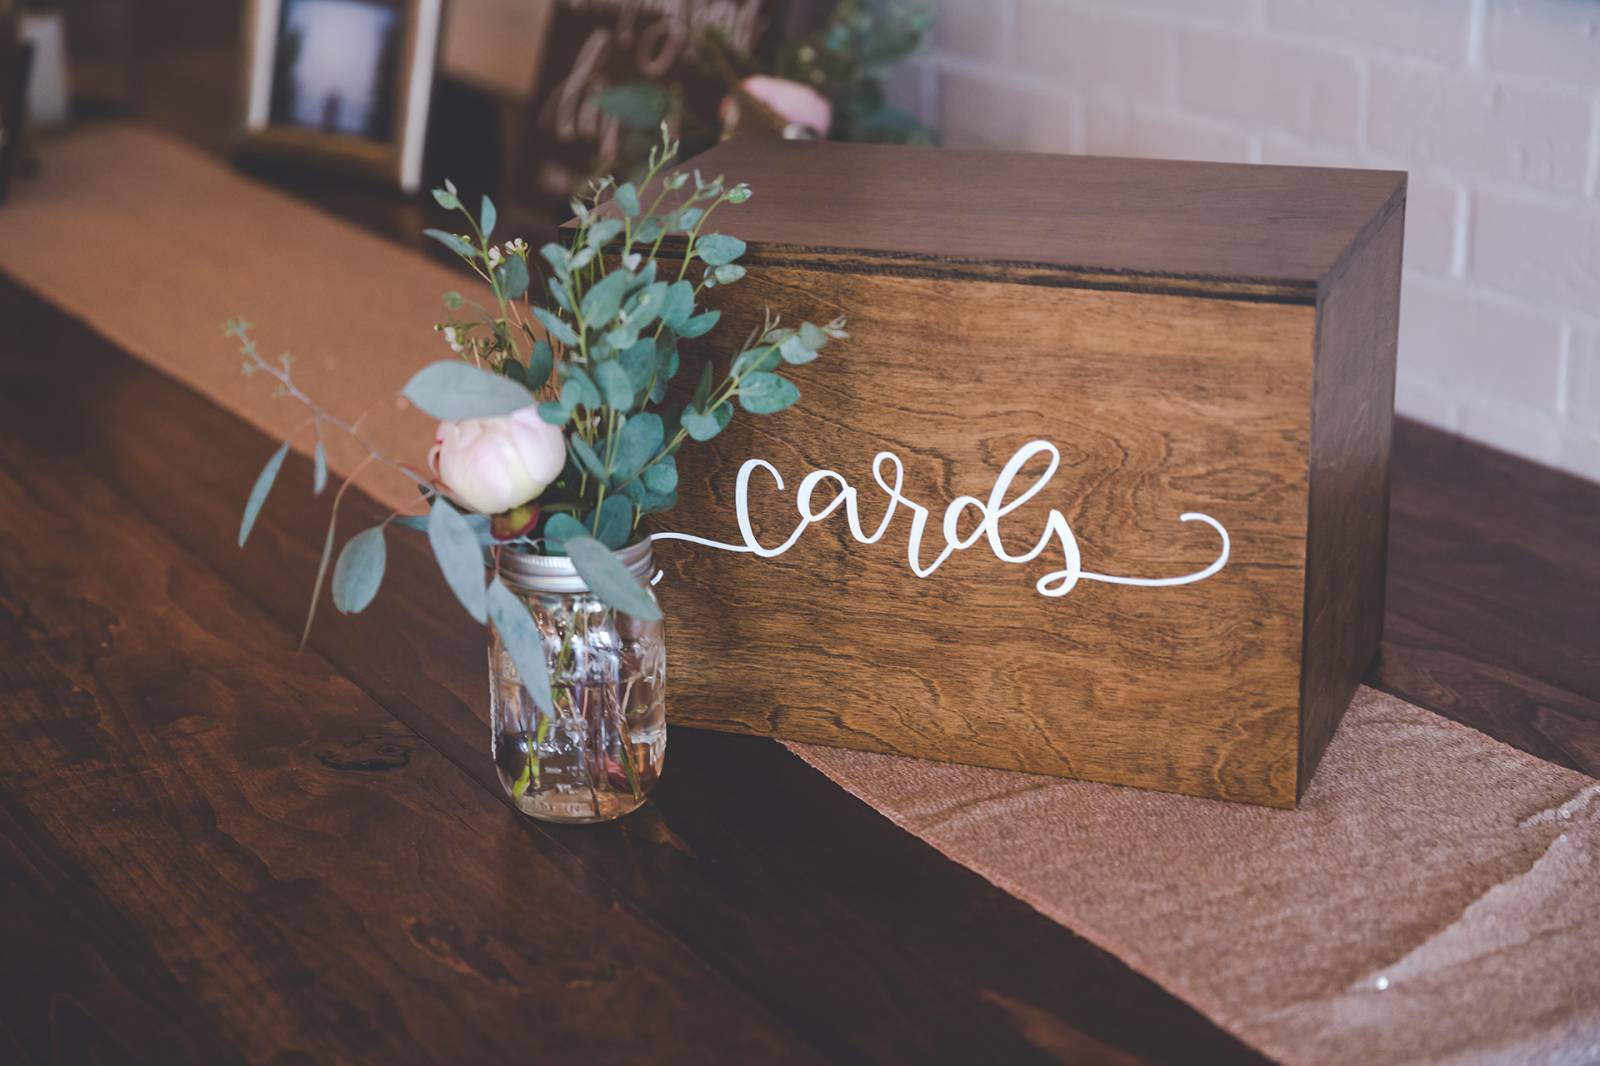 Wedding Gifts Buy Online: WEDDING REGISTRY OPTIONS AND PROPER ETIQUETTE ON WHO TO